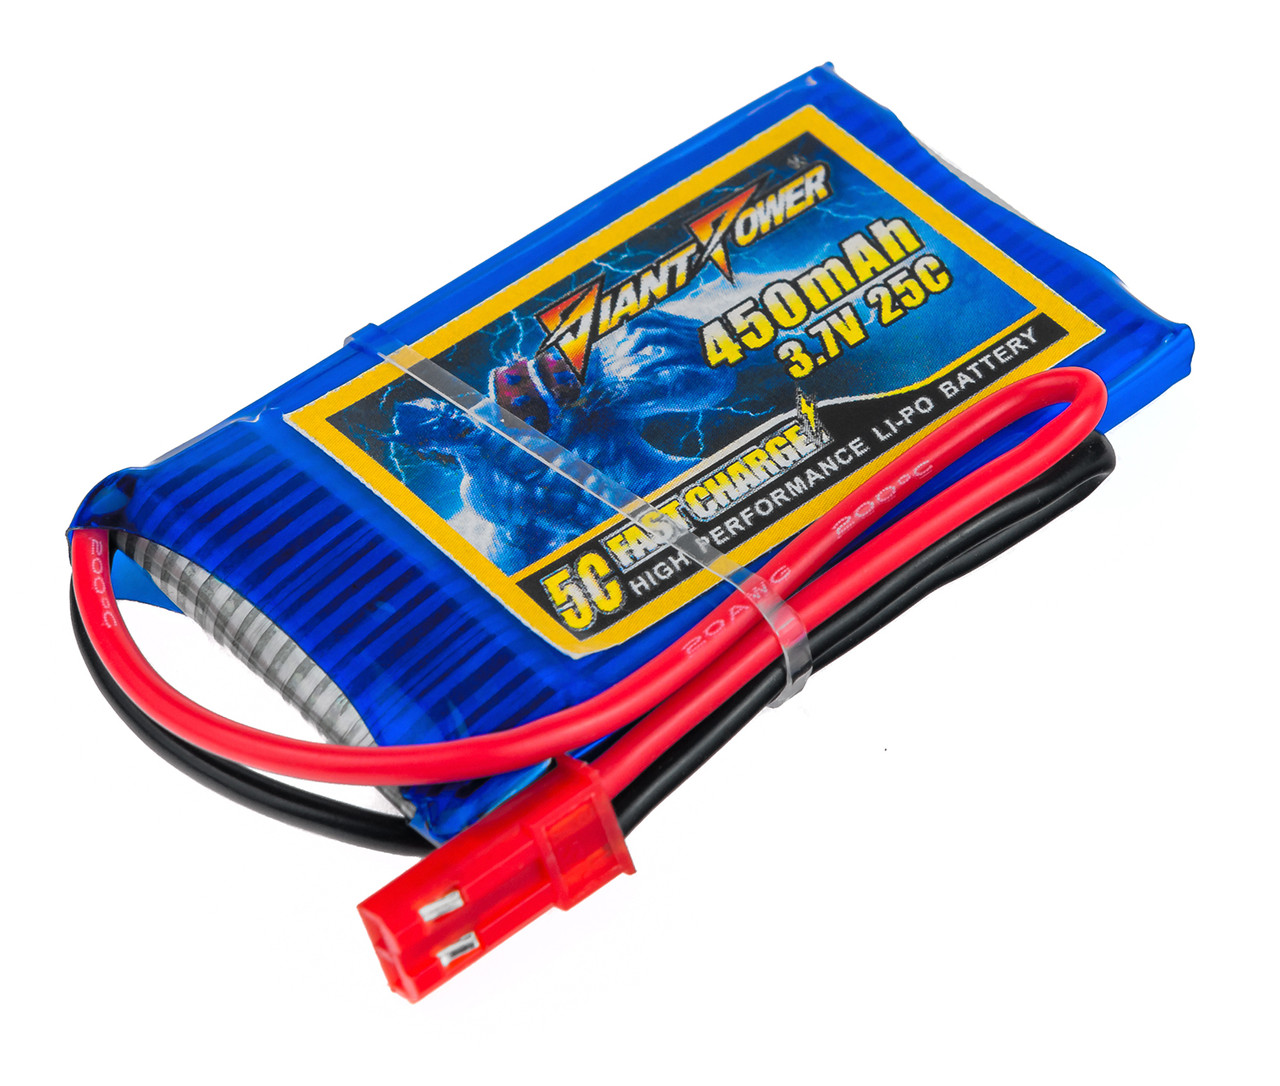 Аккумулятор Giant Power Li-Pol 450mAh 3.7V 1S 25C 4.5x30x53мм JST